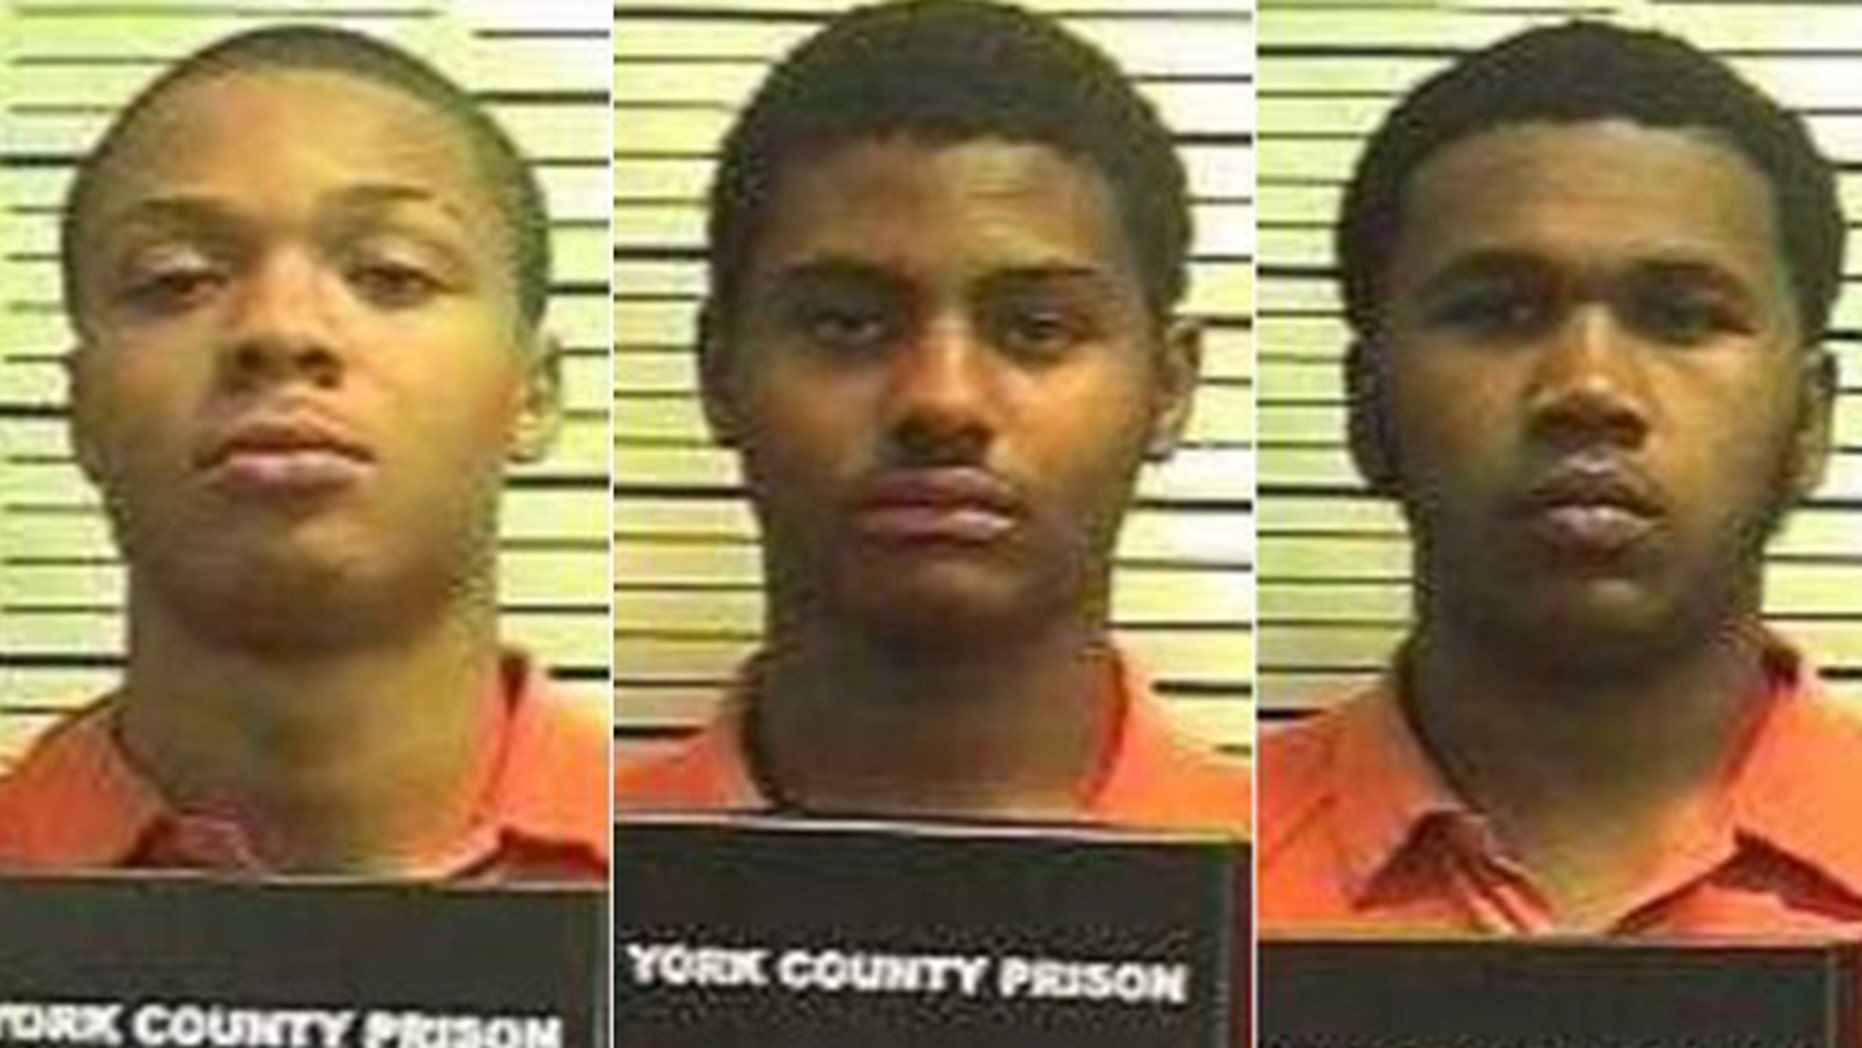 Three members of the Central York High School football team have been charged with raping a 14-year-old girl at gunpoint after she left a Pennsylvania town fair. (York County)